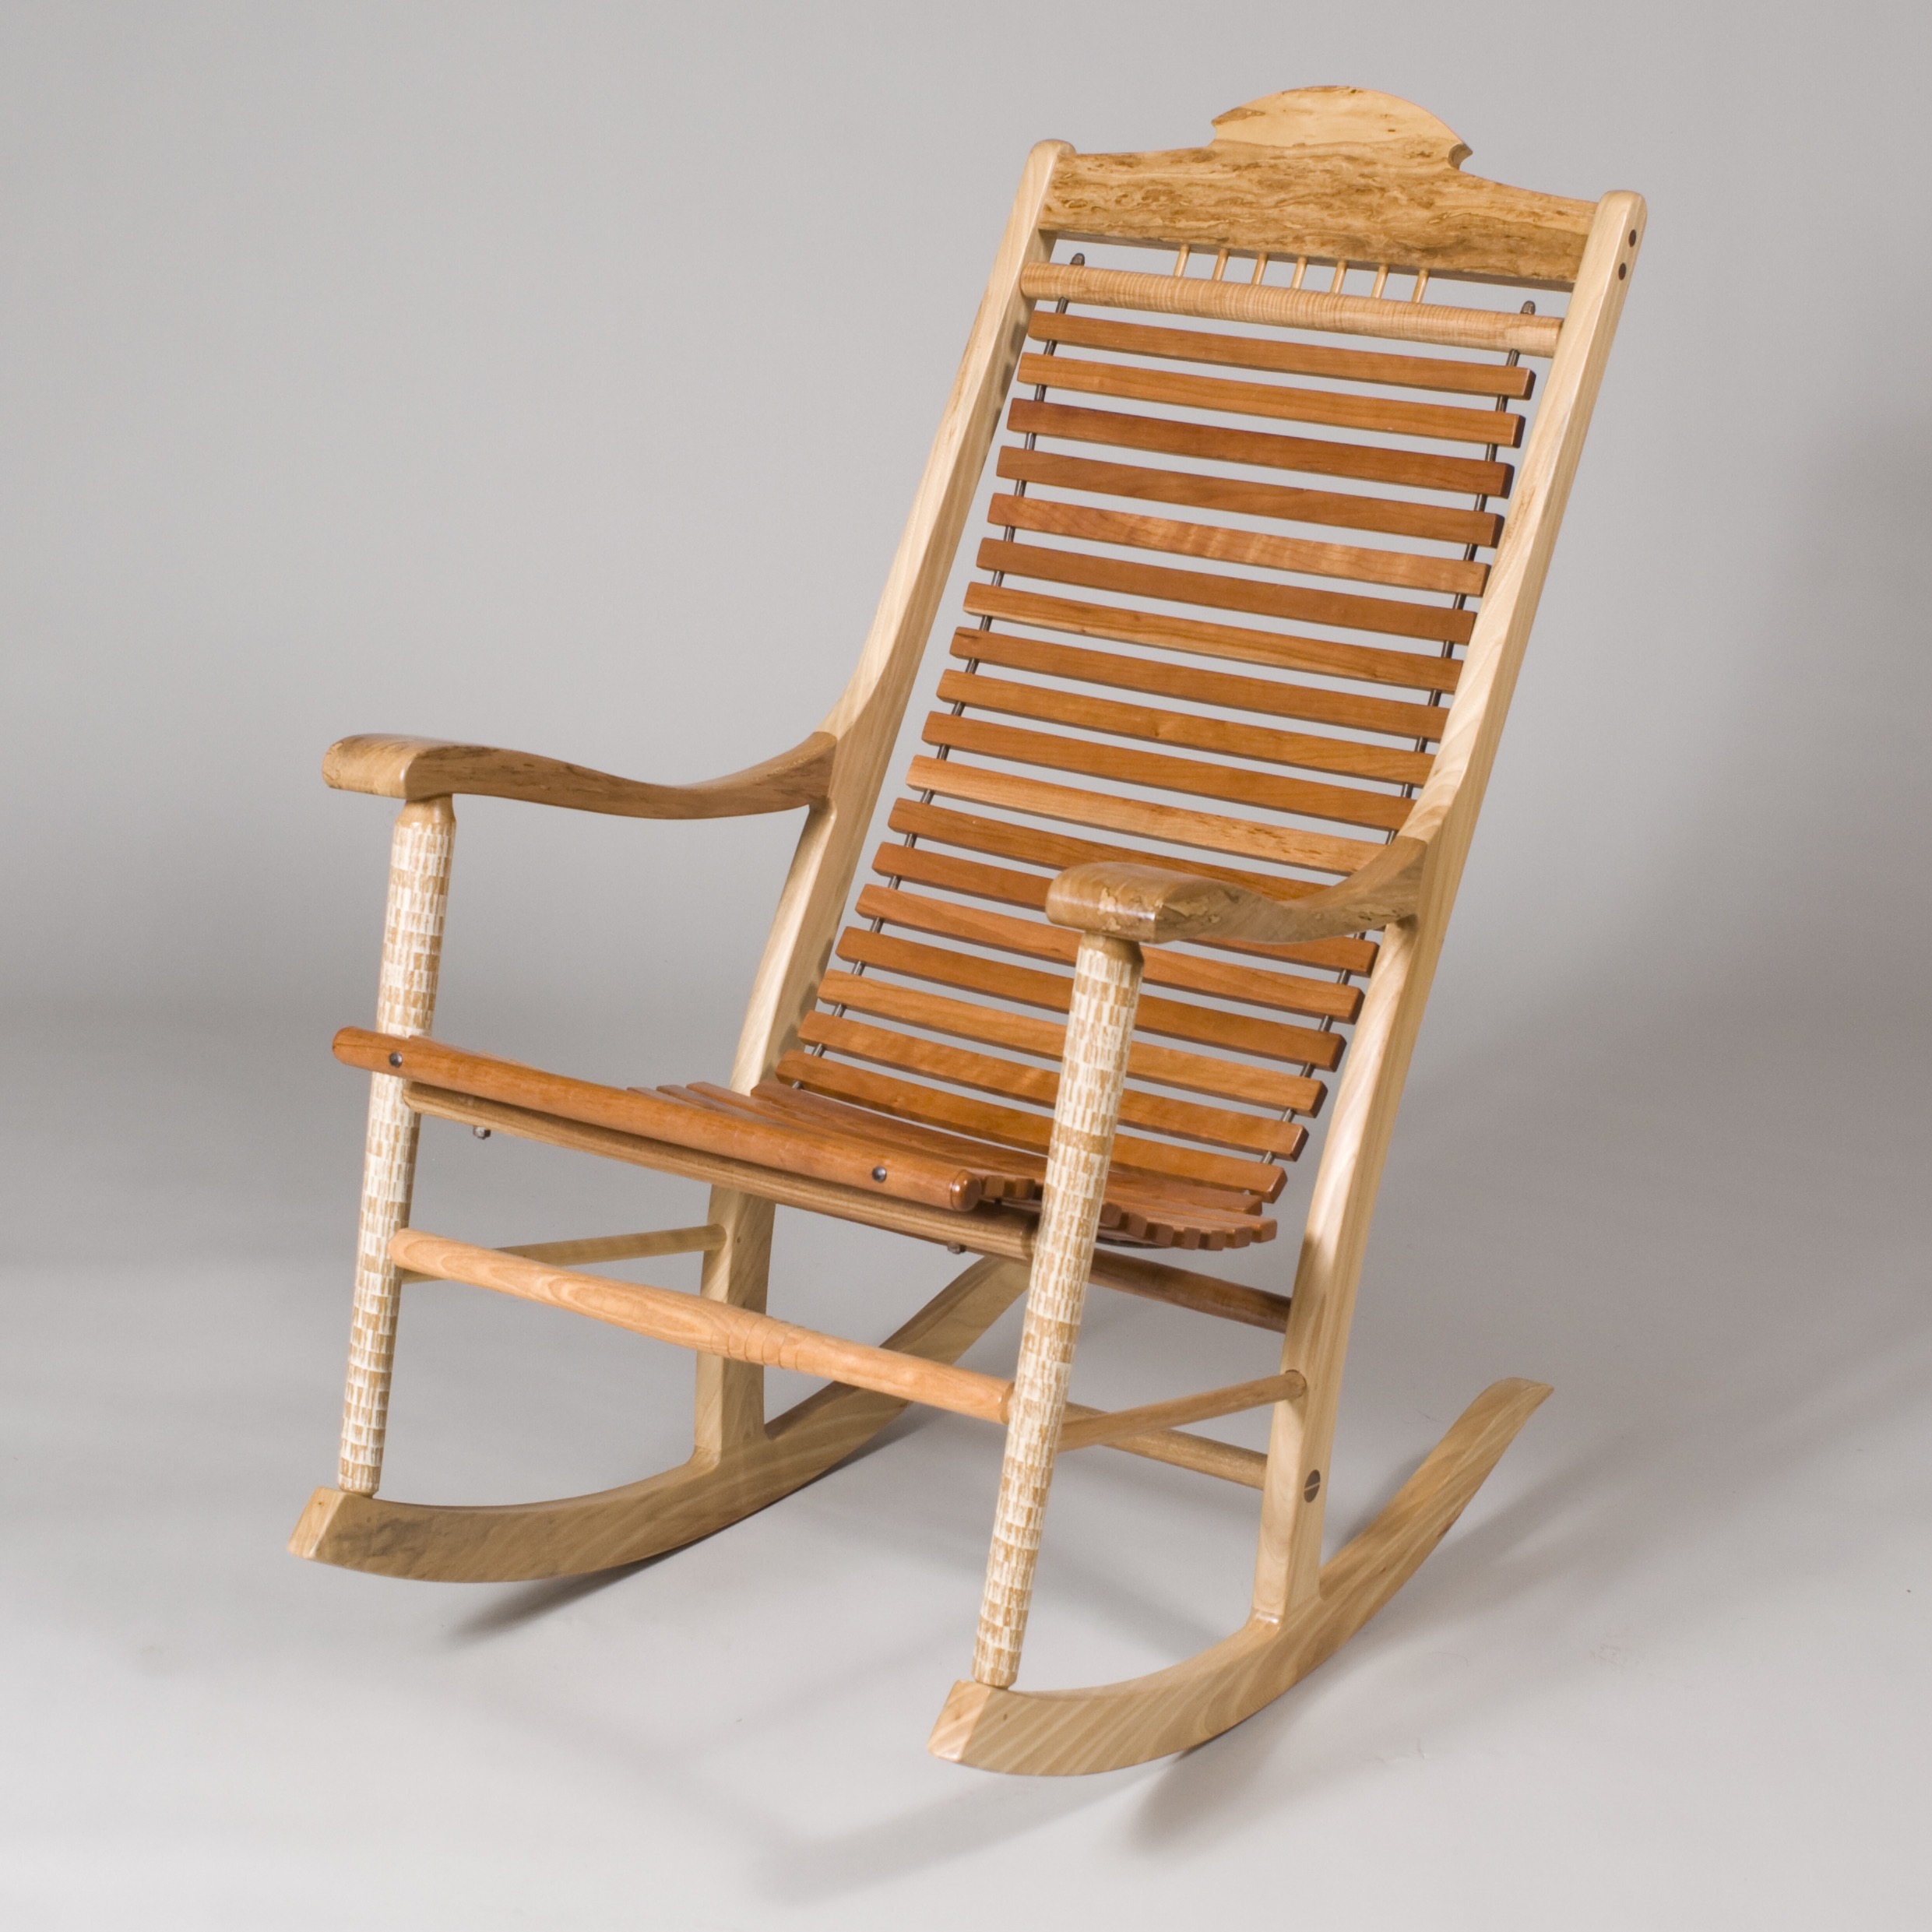 rocking-chair-03.jpg